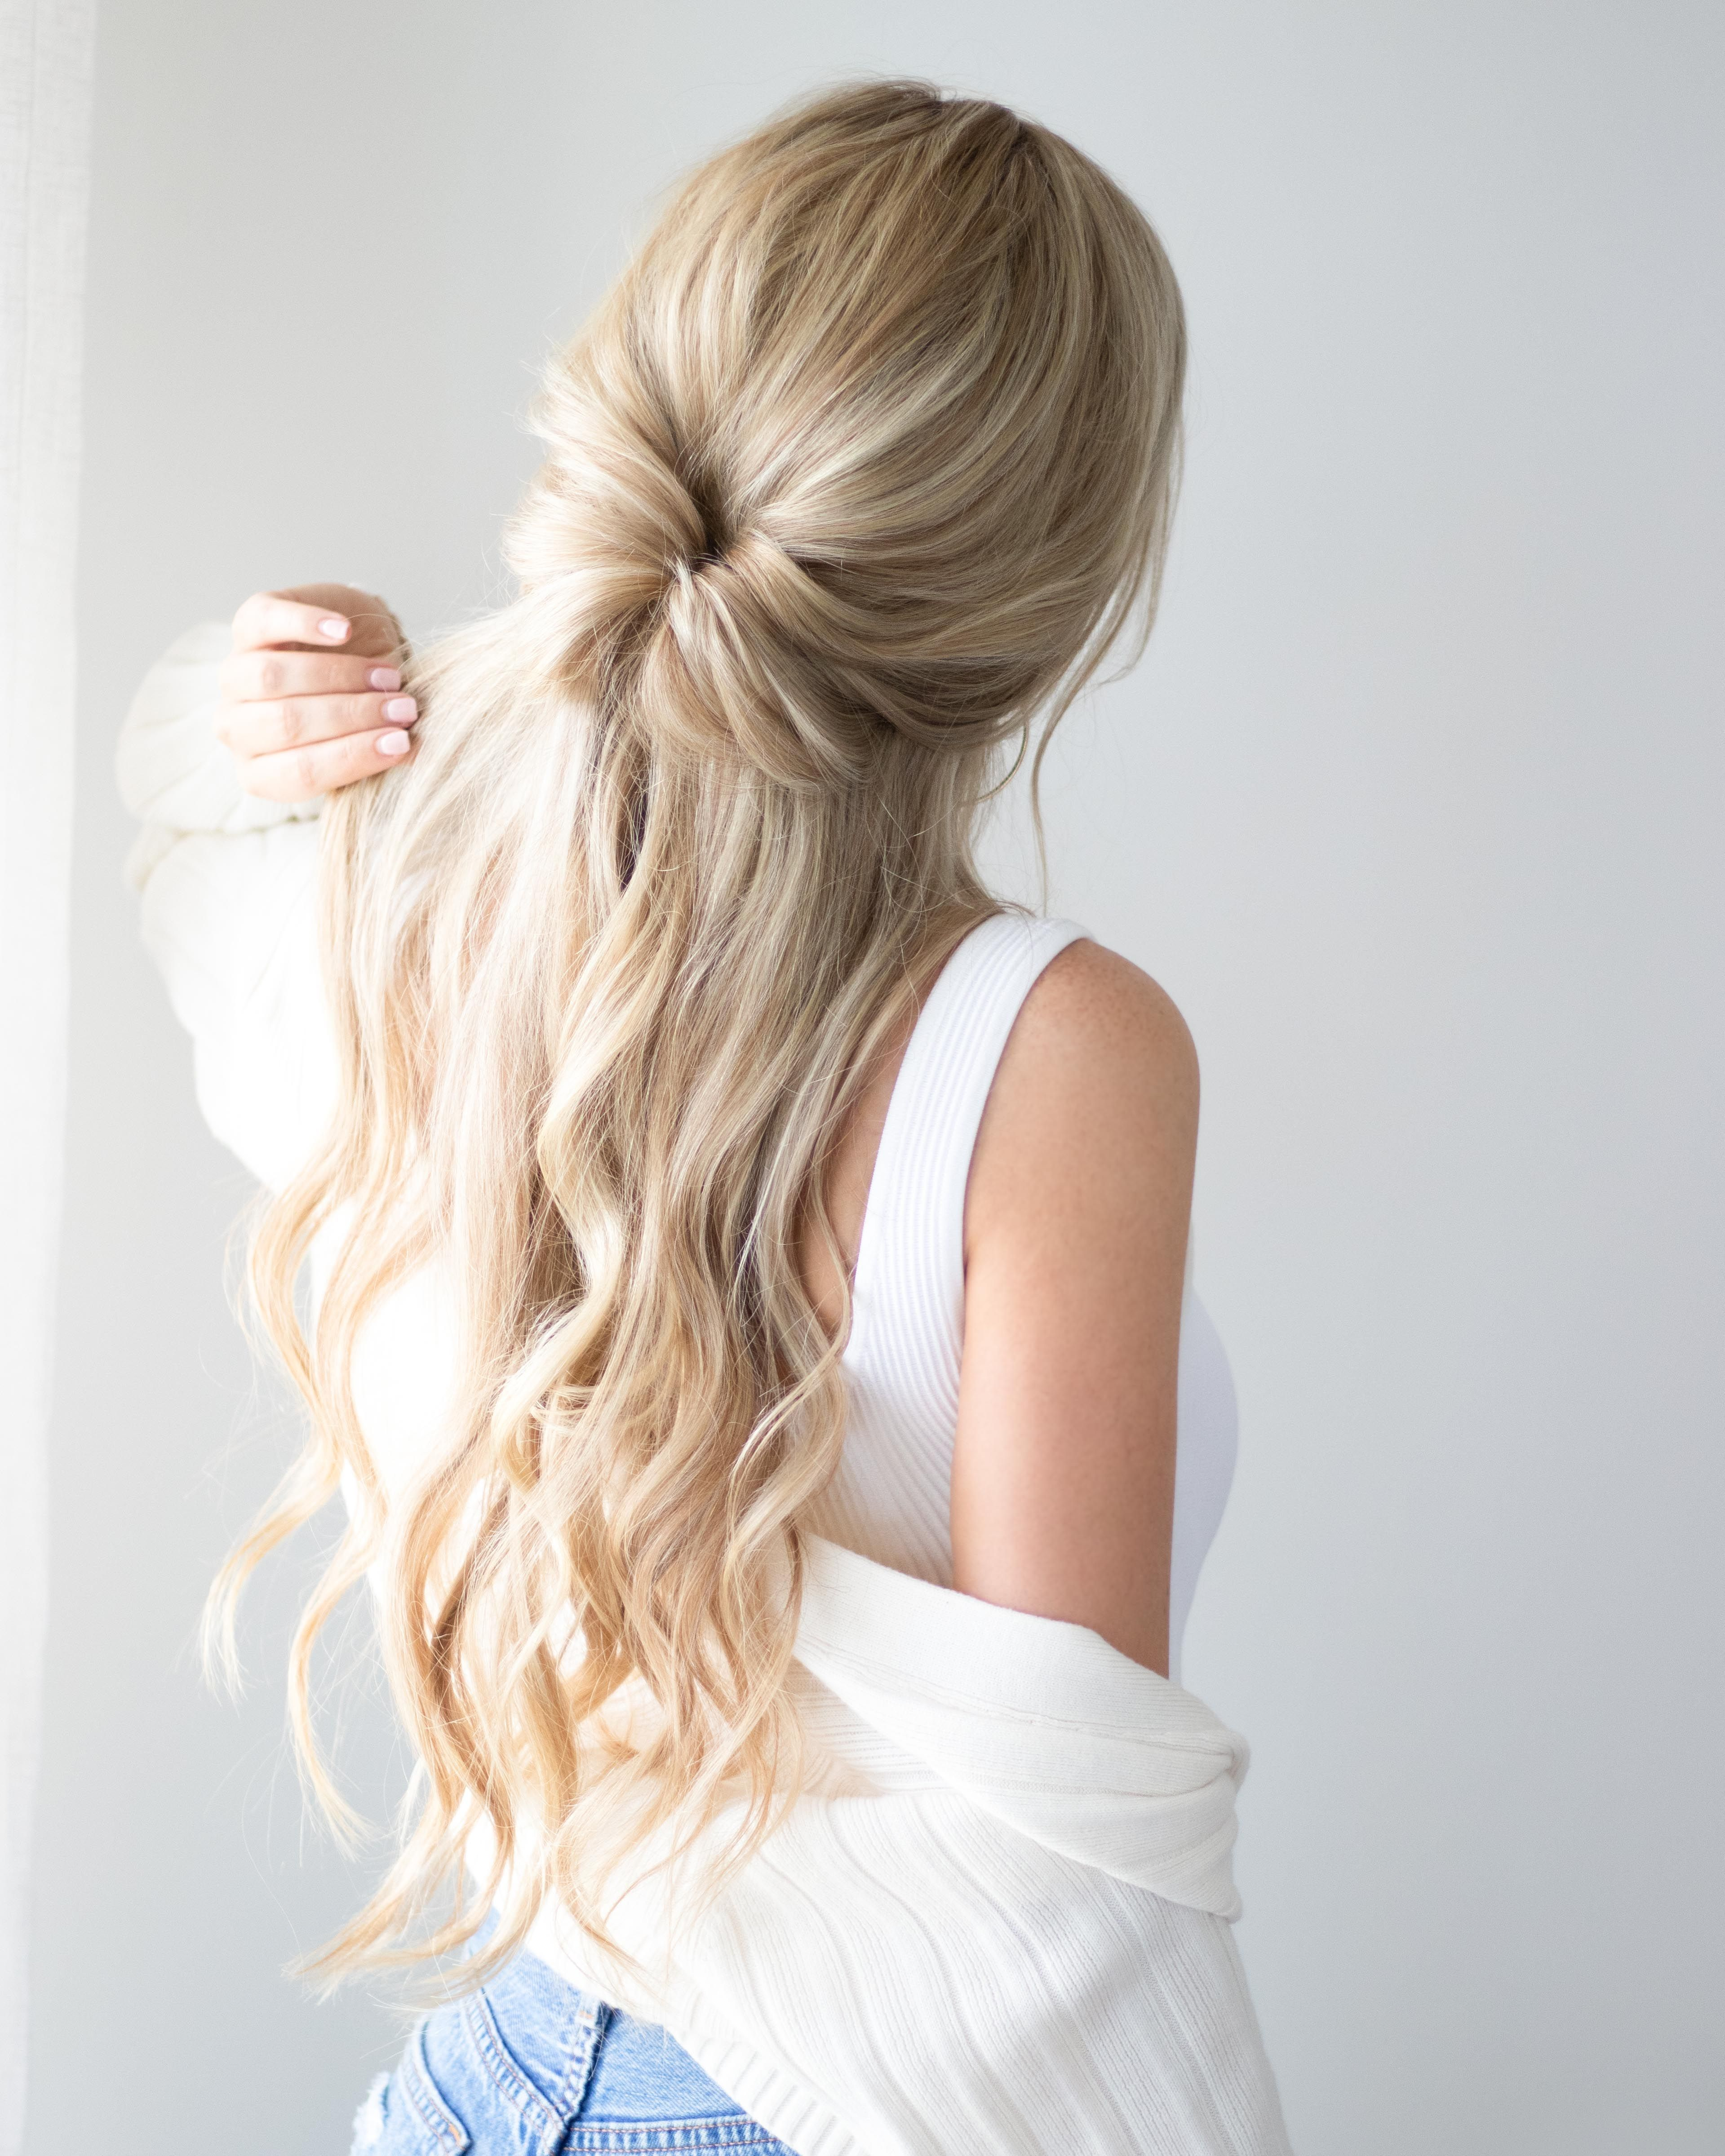 Half Up Half Down Hairstyle Inspo @alexgaboury